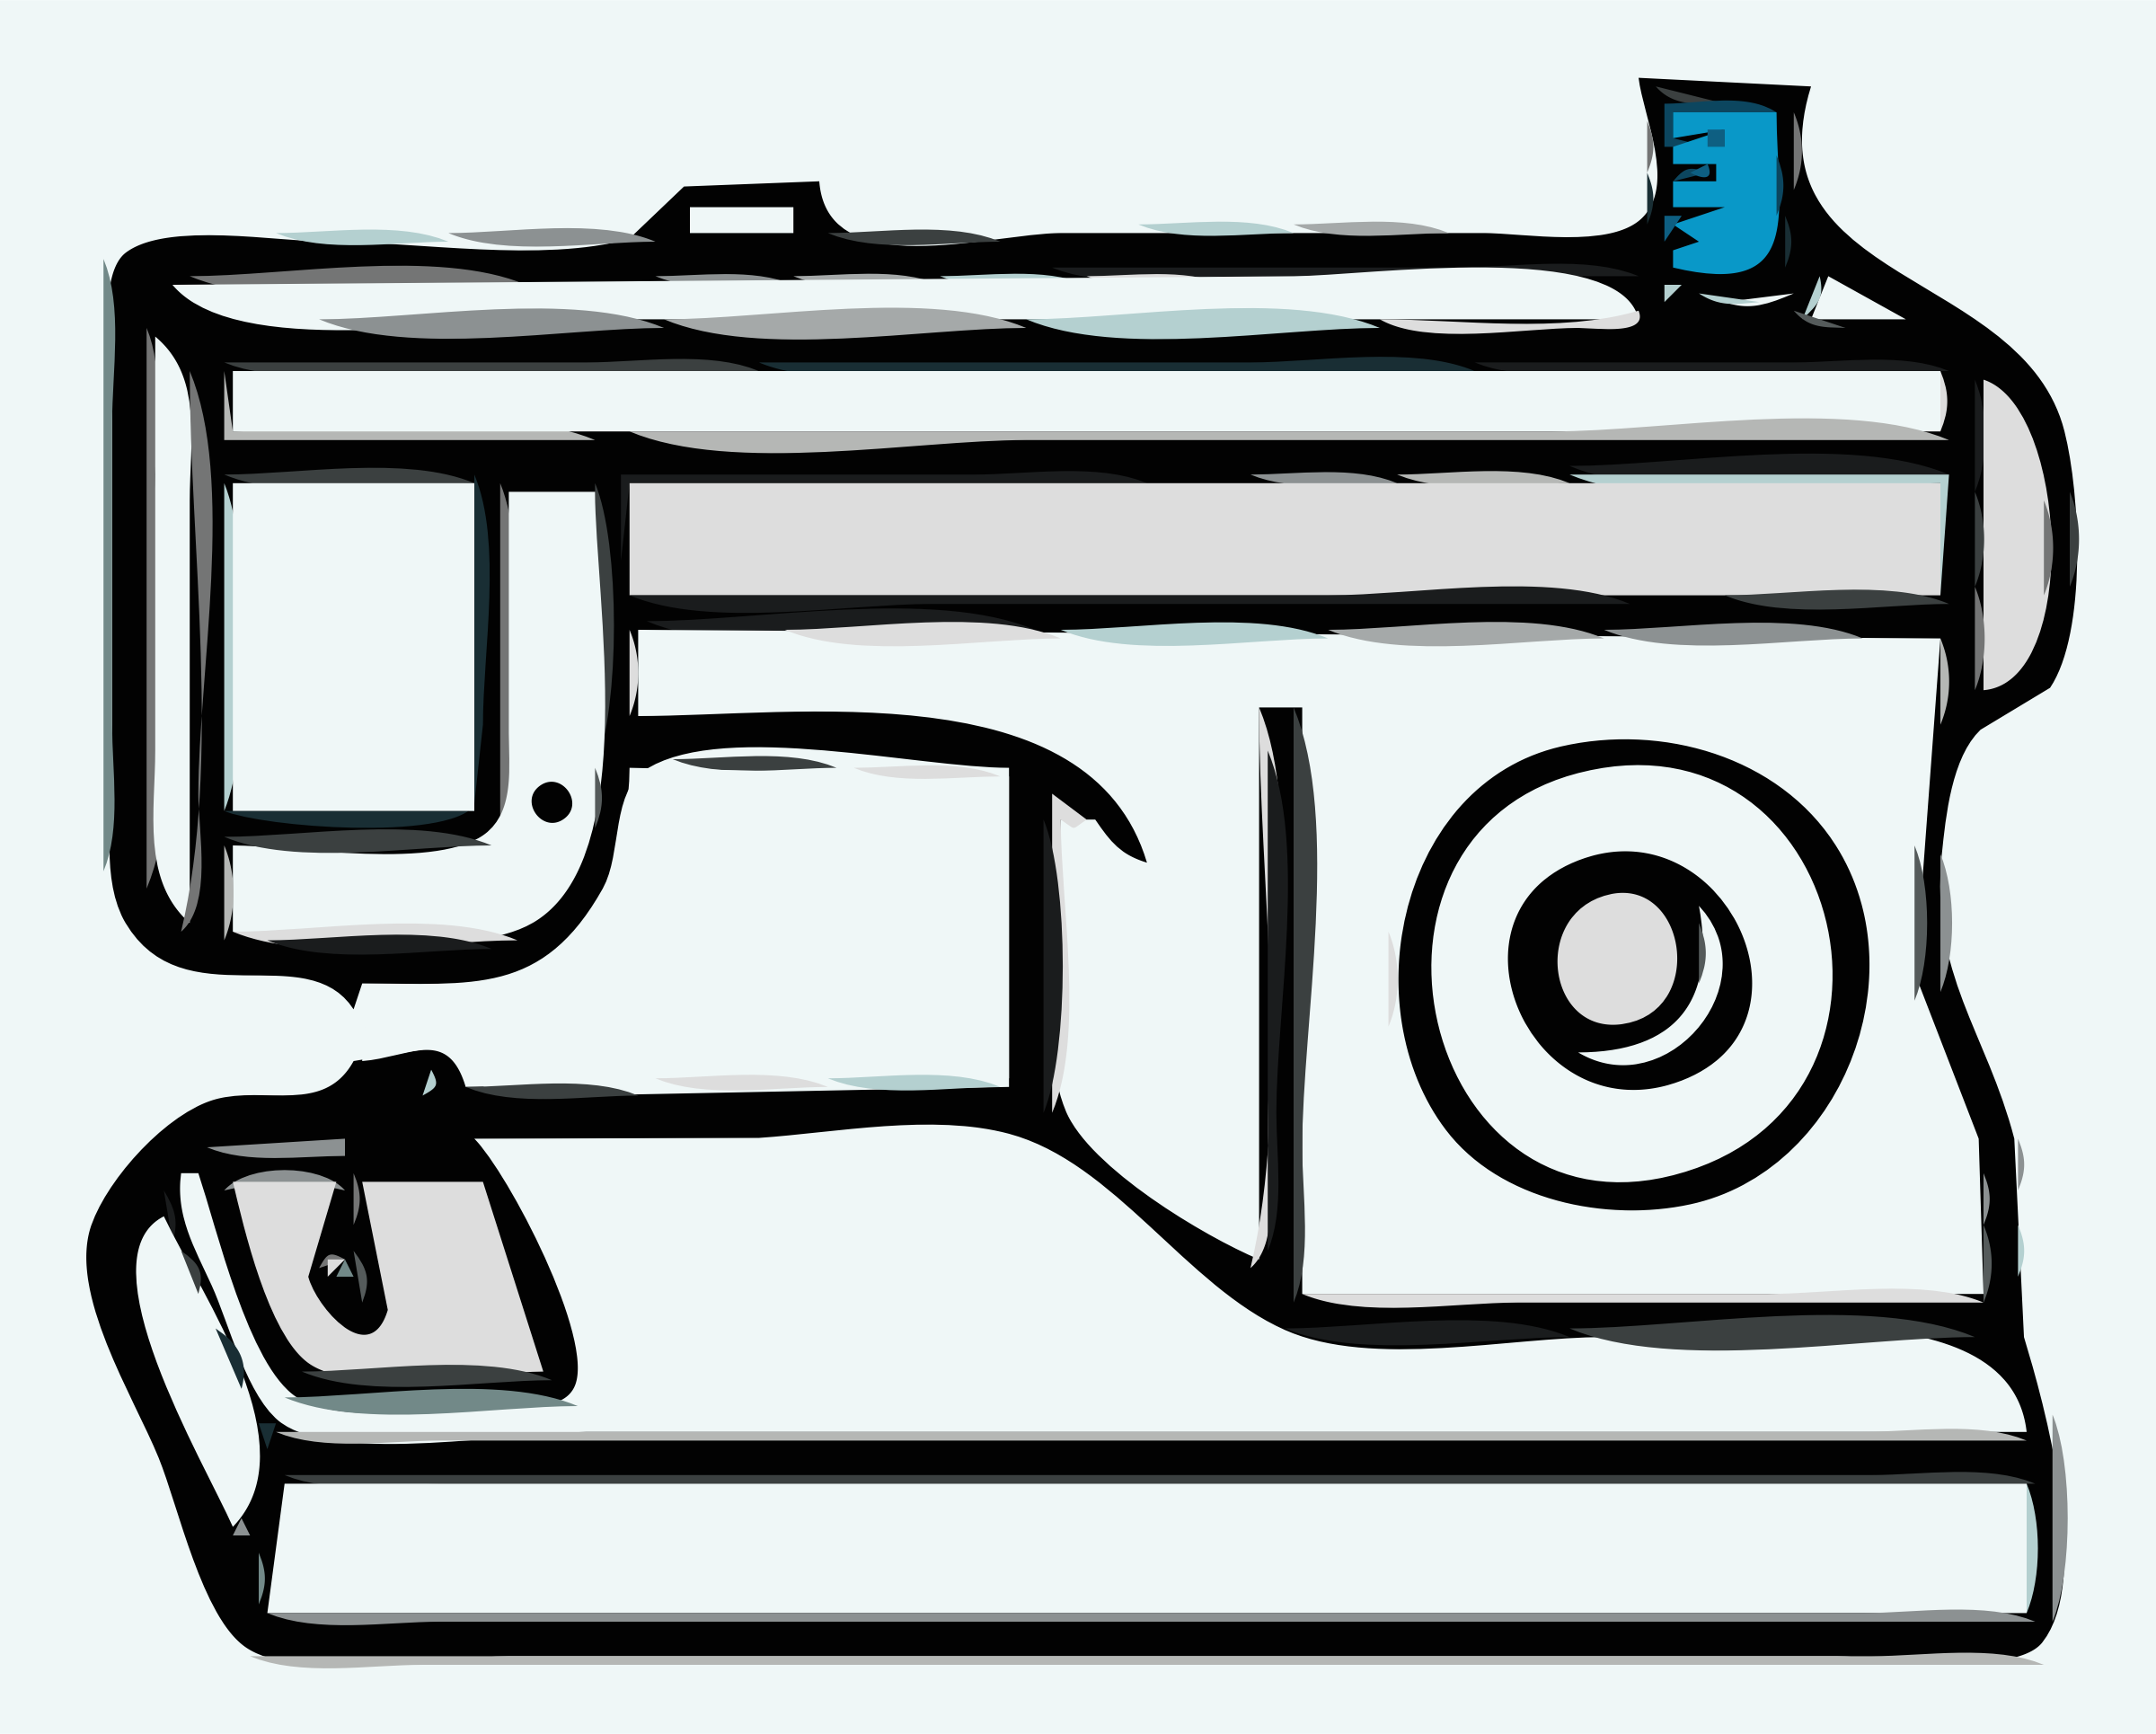 Sewing Machine clipart #1, Download drawings